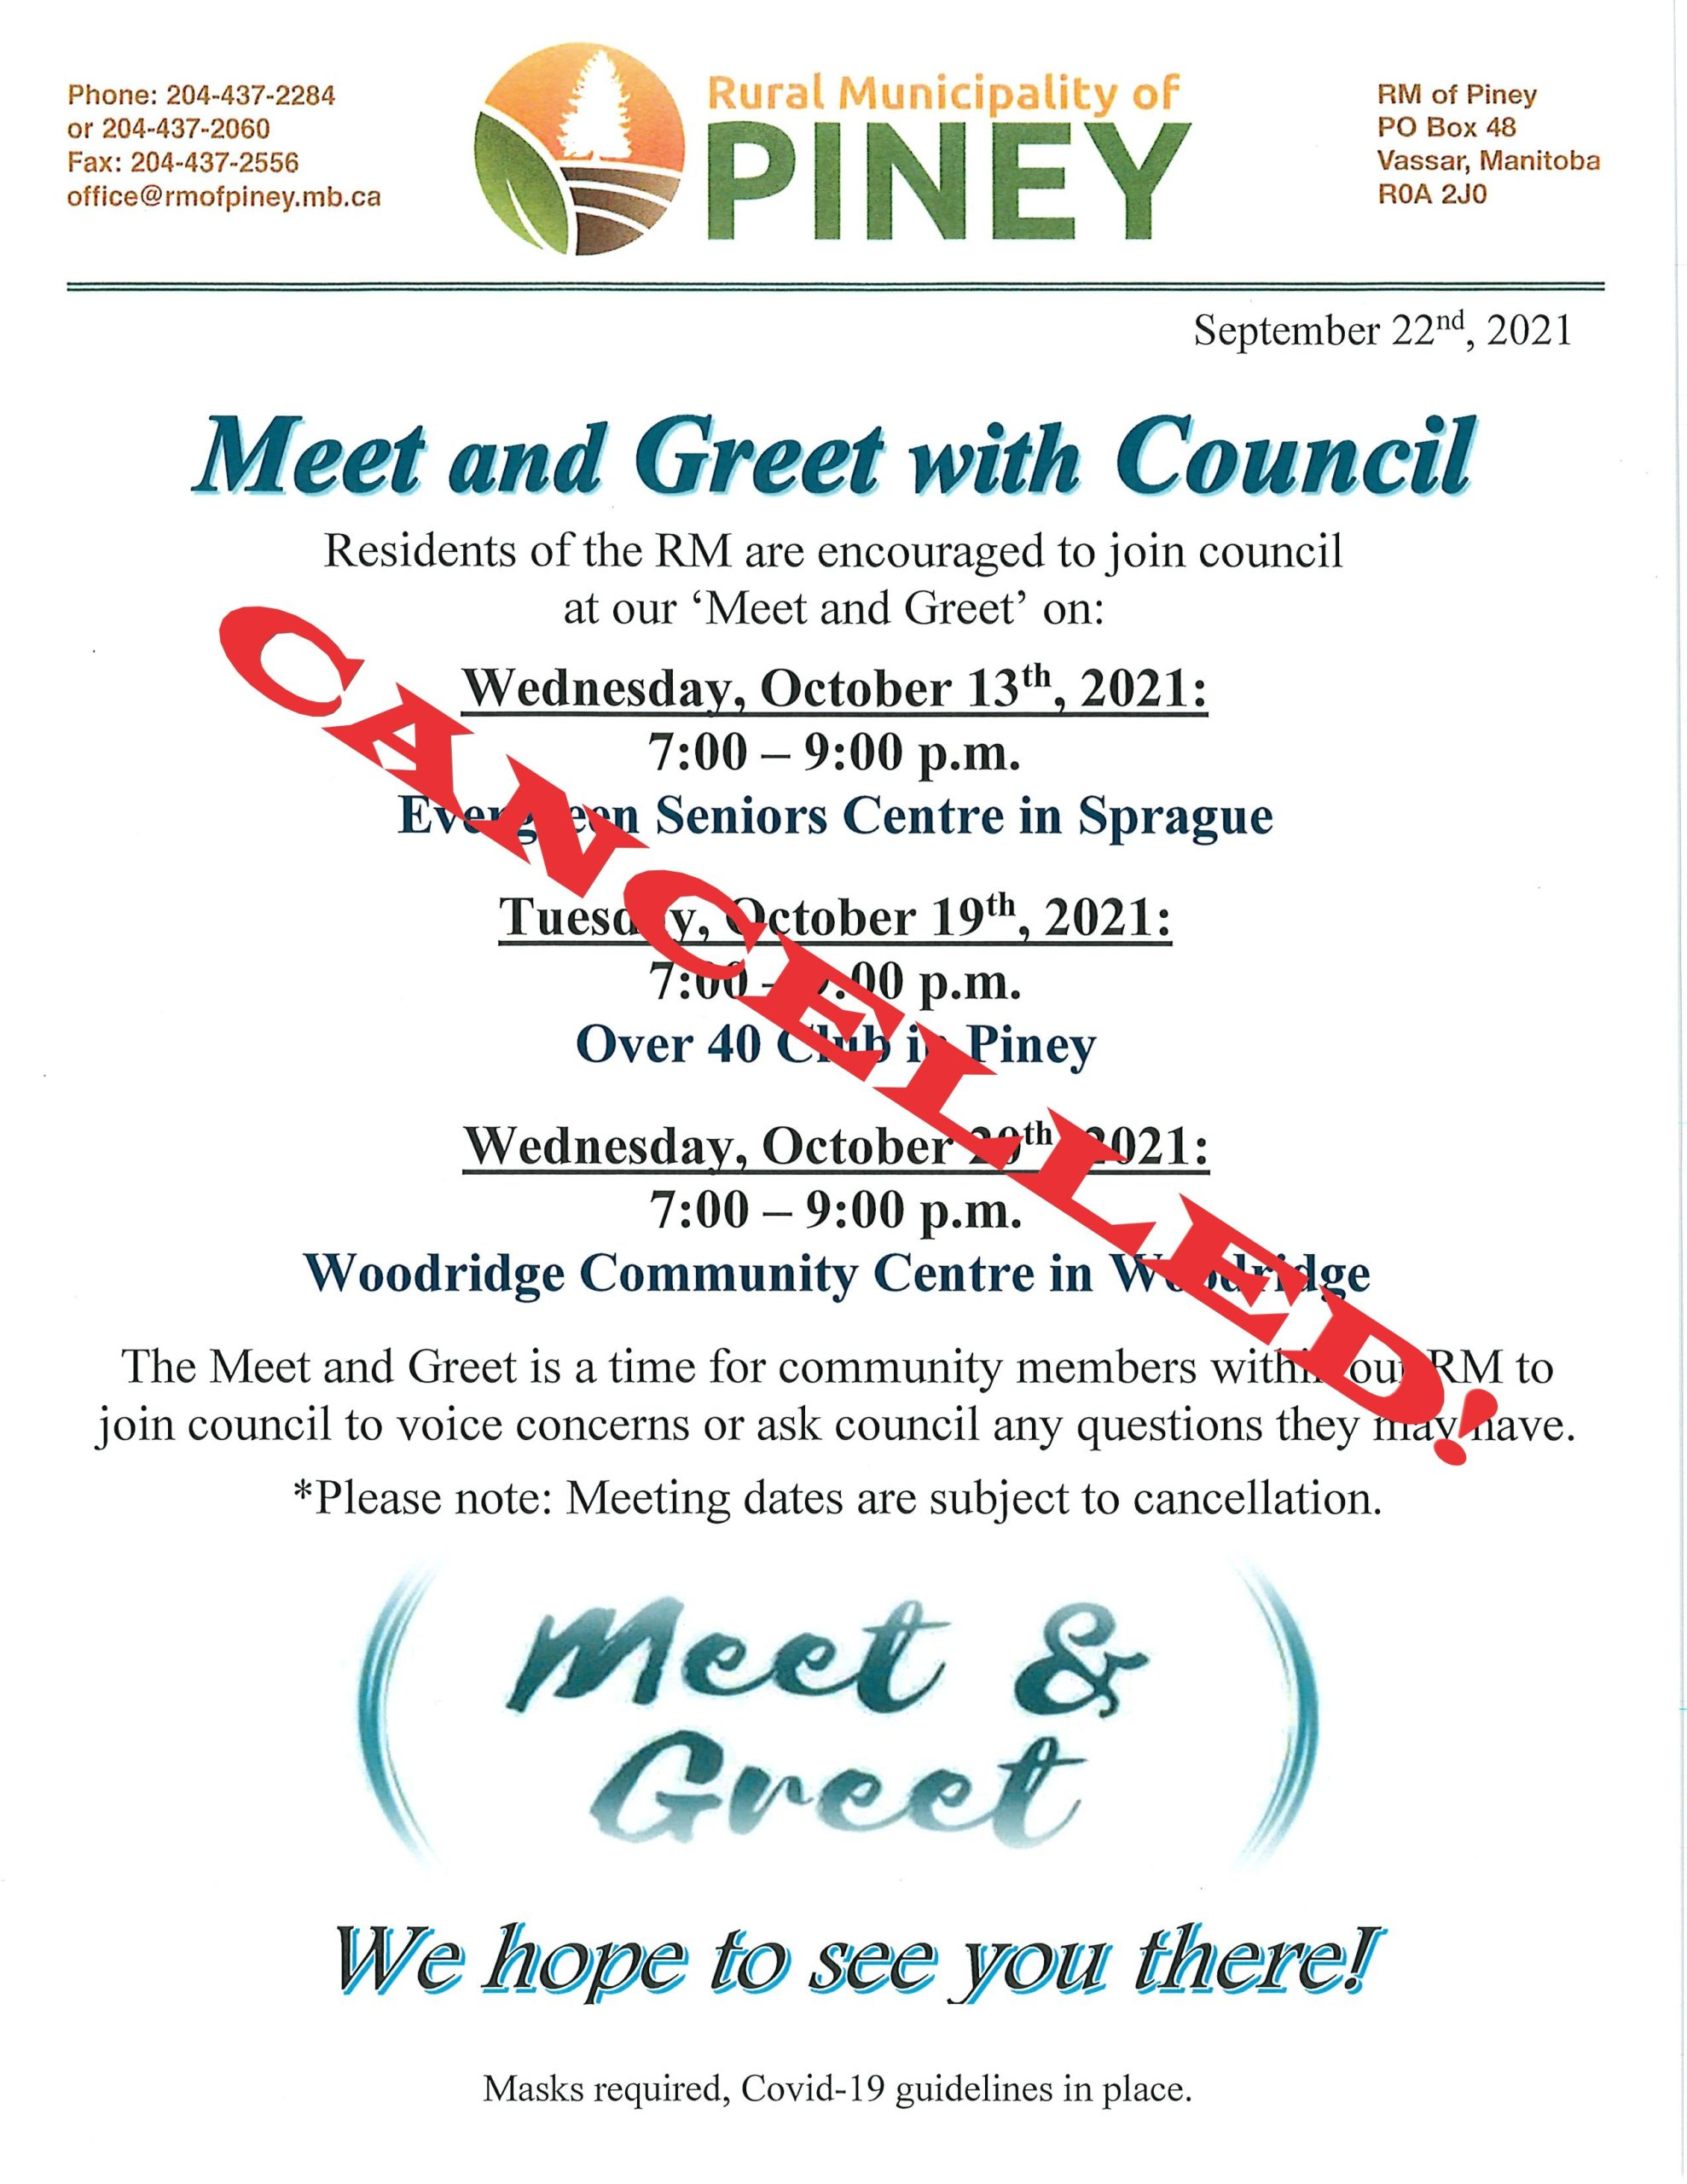 Meet and Greet October 2021 Cancelled